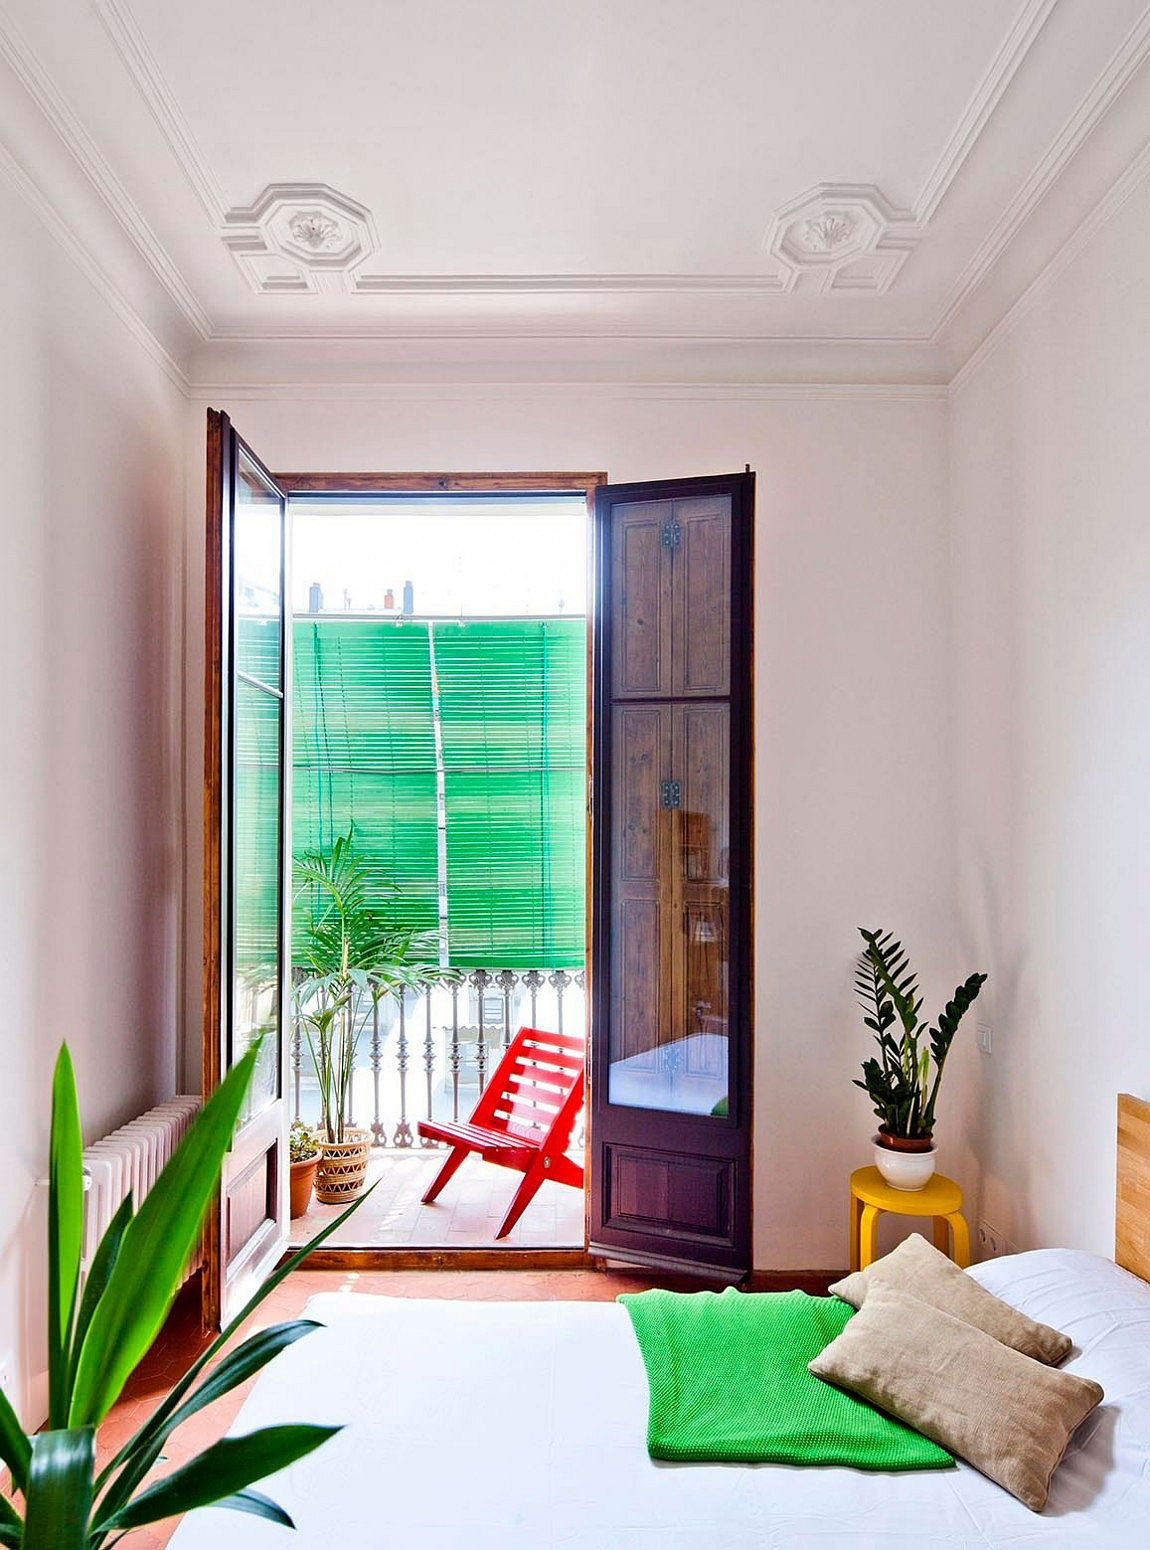 Small balcony connected with the modern bedroom of the Barcelona apartment